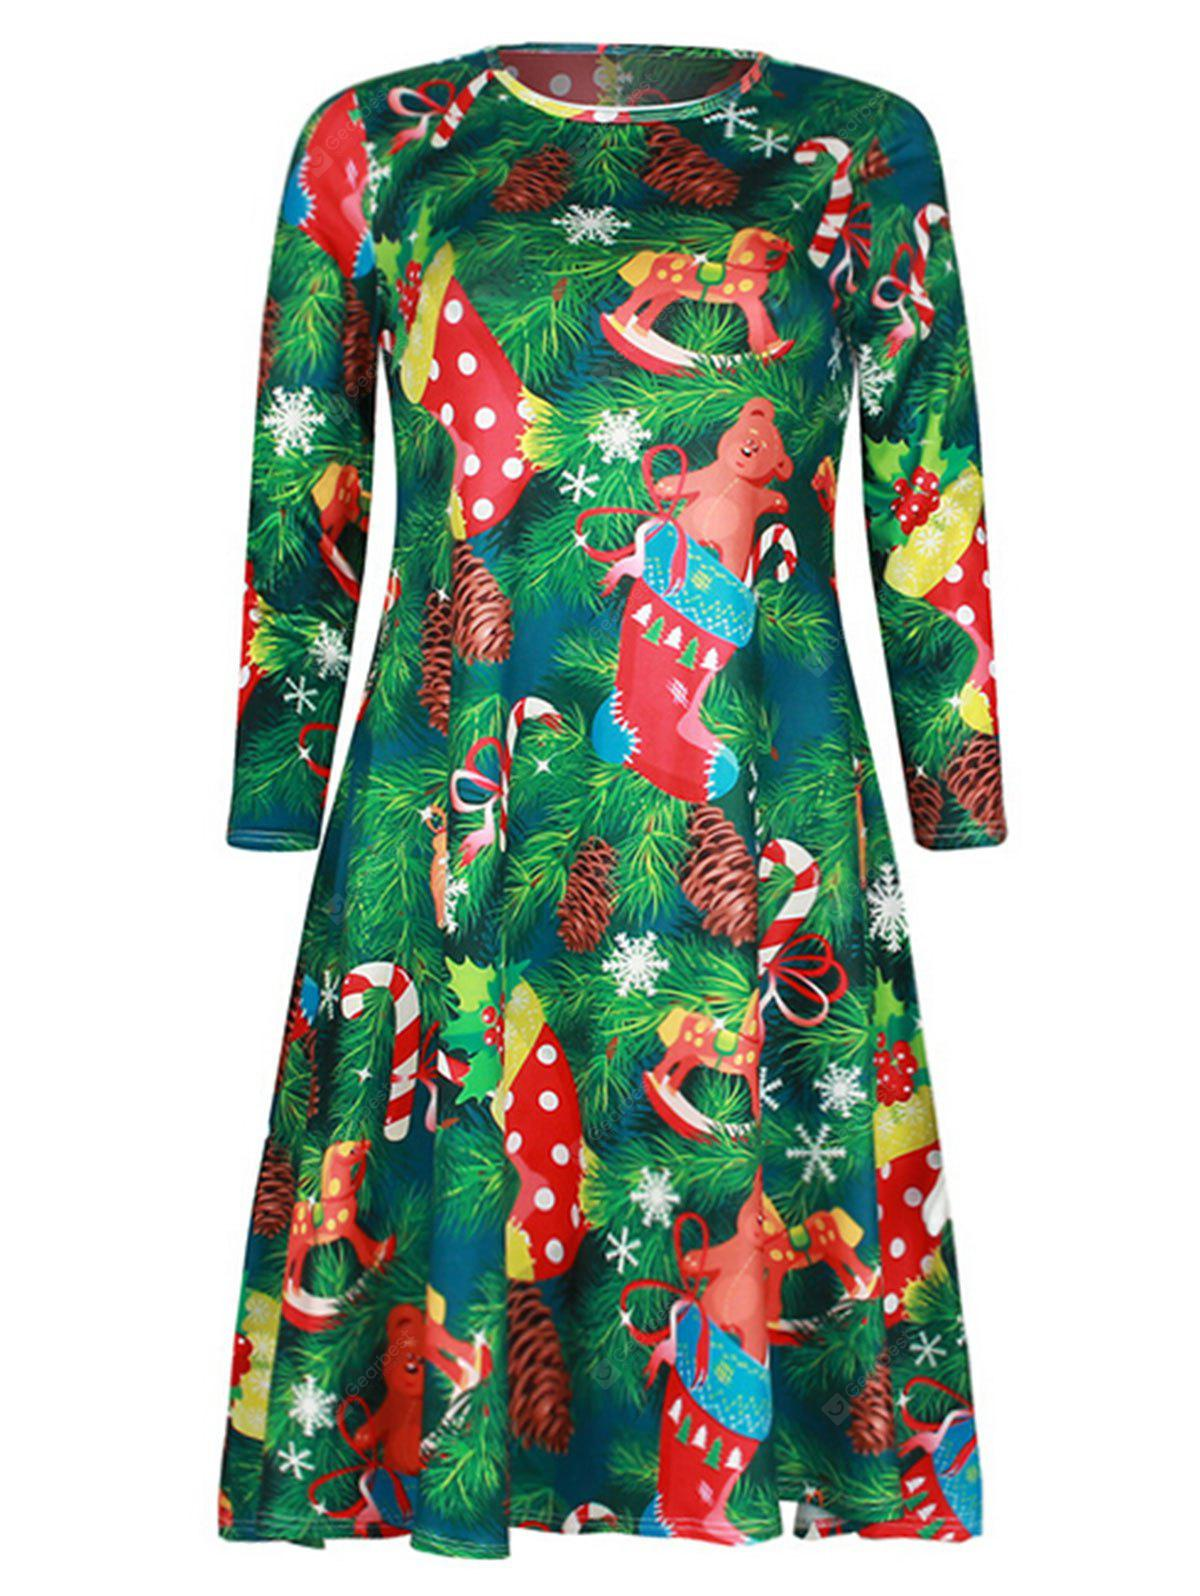 Christams Gifts and Tree Print Swing Dress